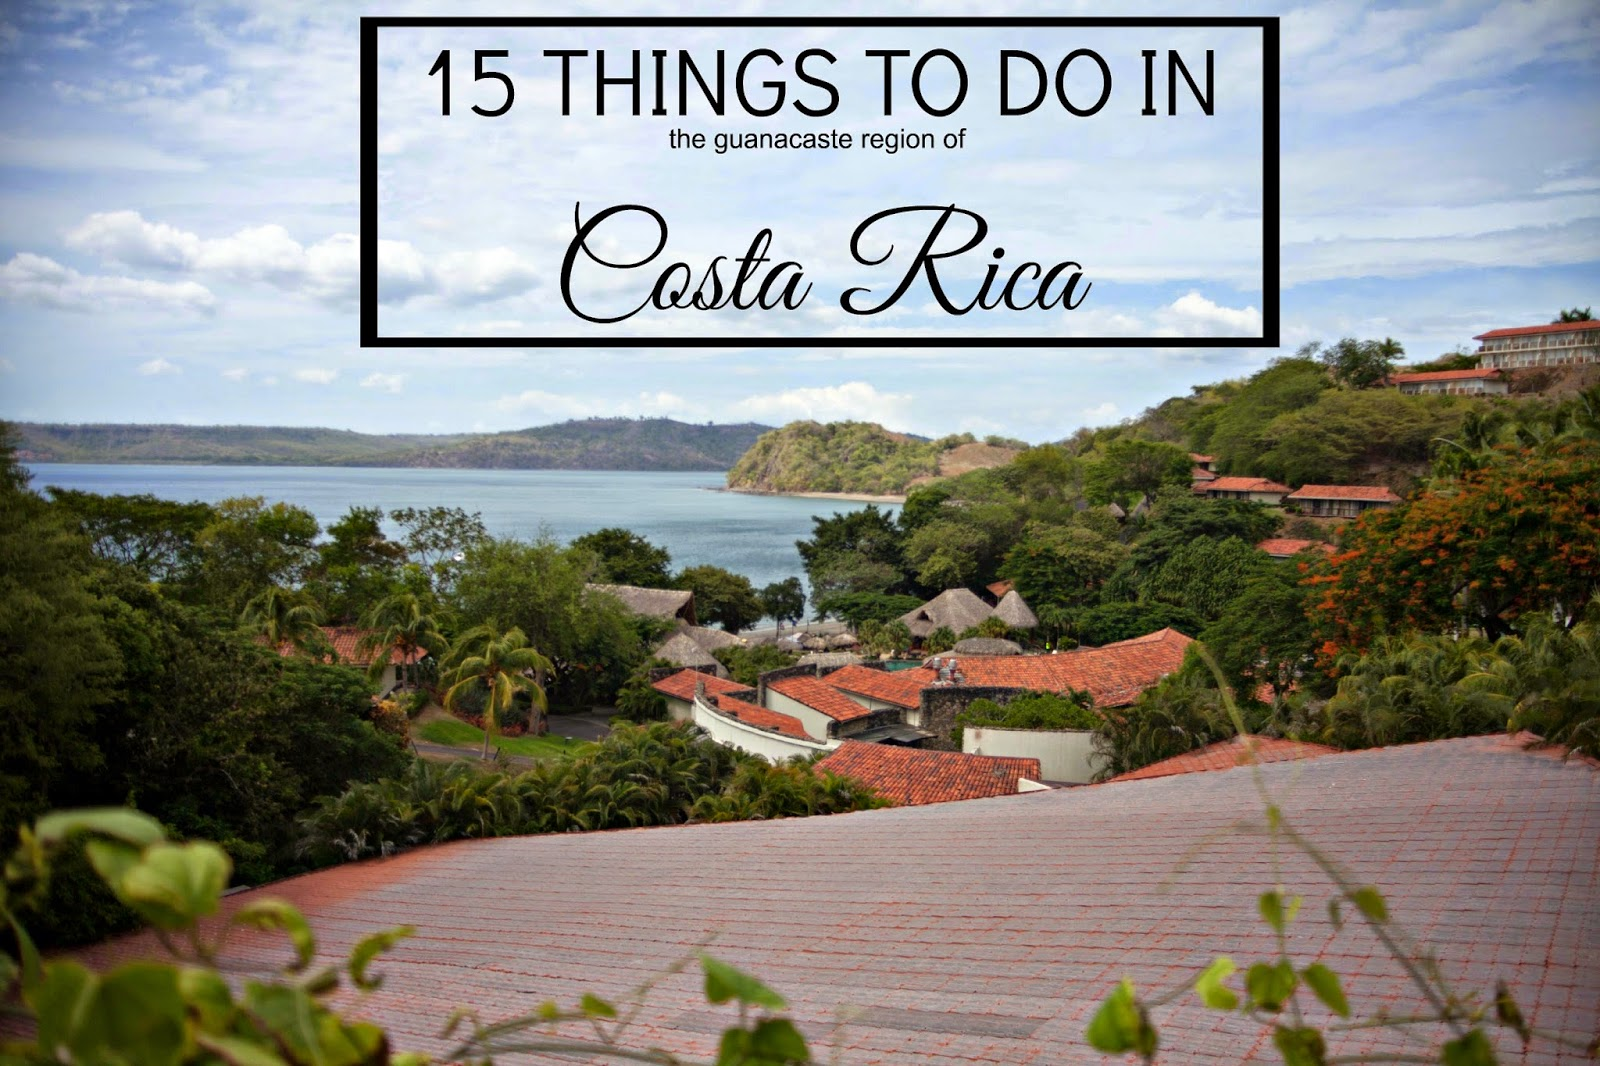 What to do in Guanacaste Region of Costa Rica